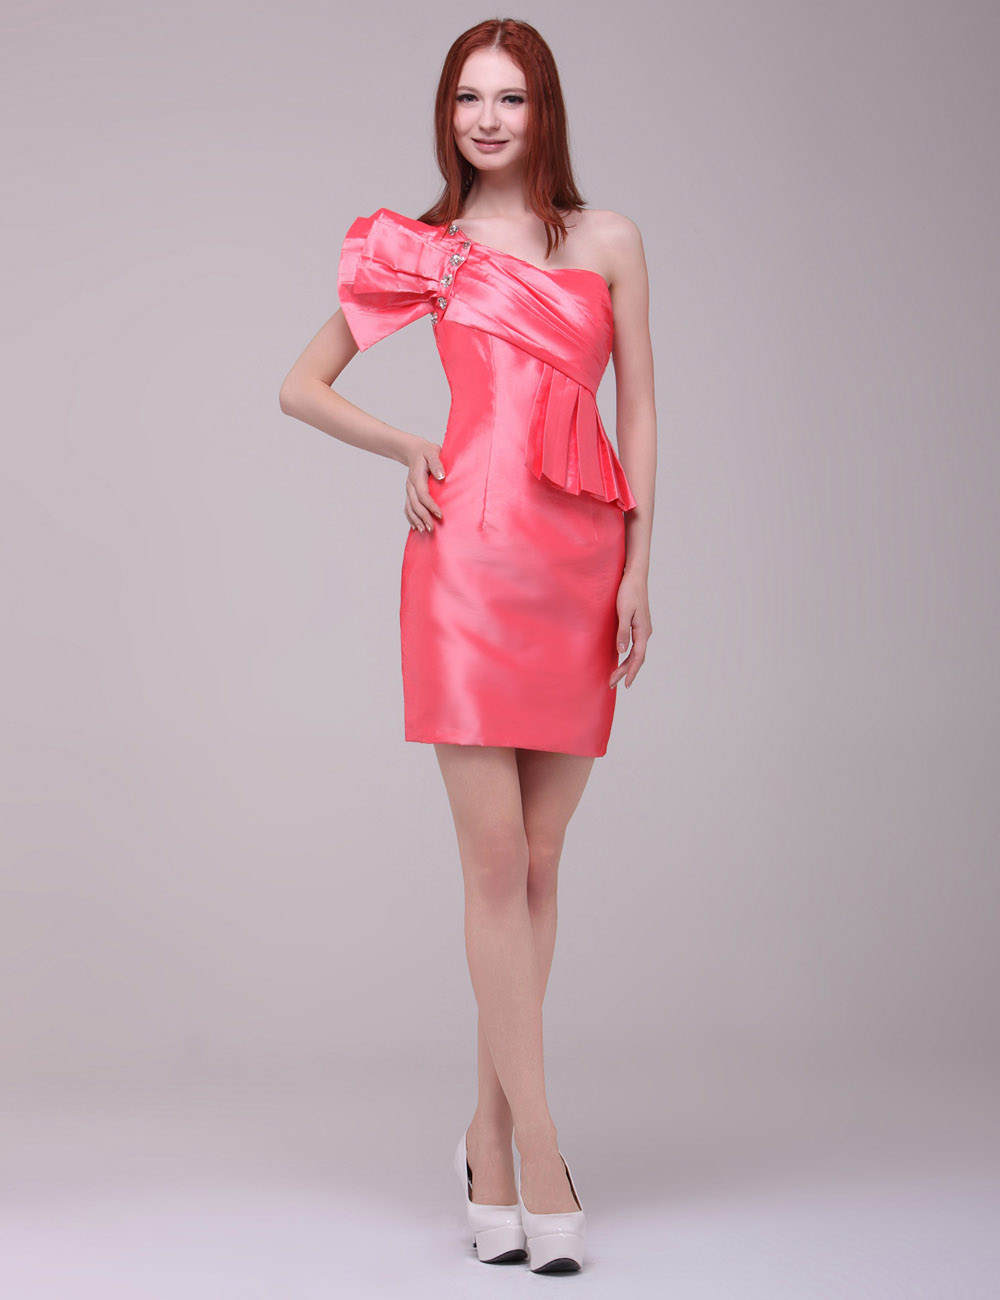 Sheath/Column Strapless Short/Mini Satin Graduation Dress